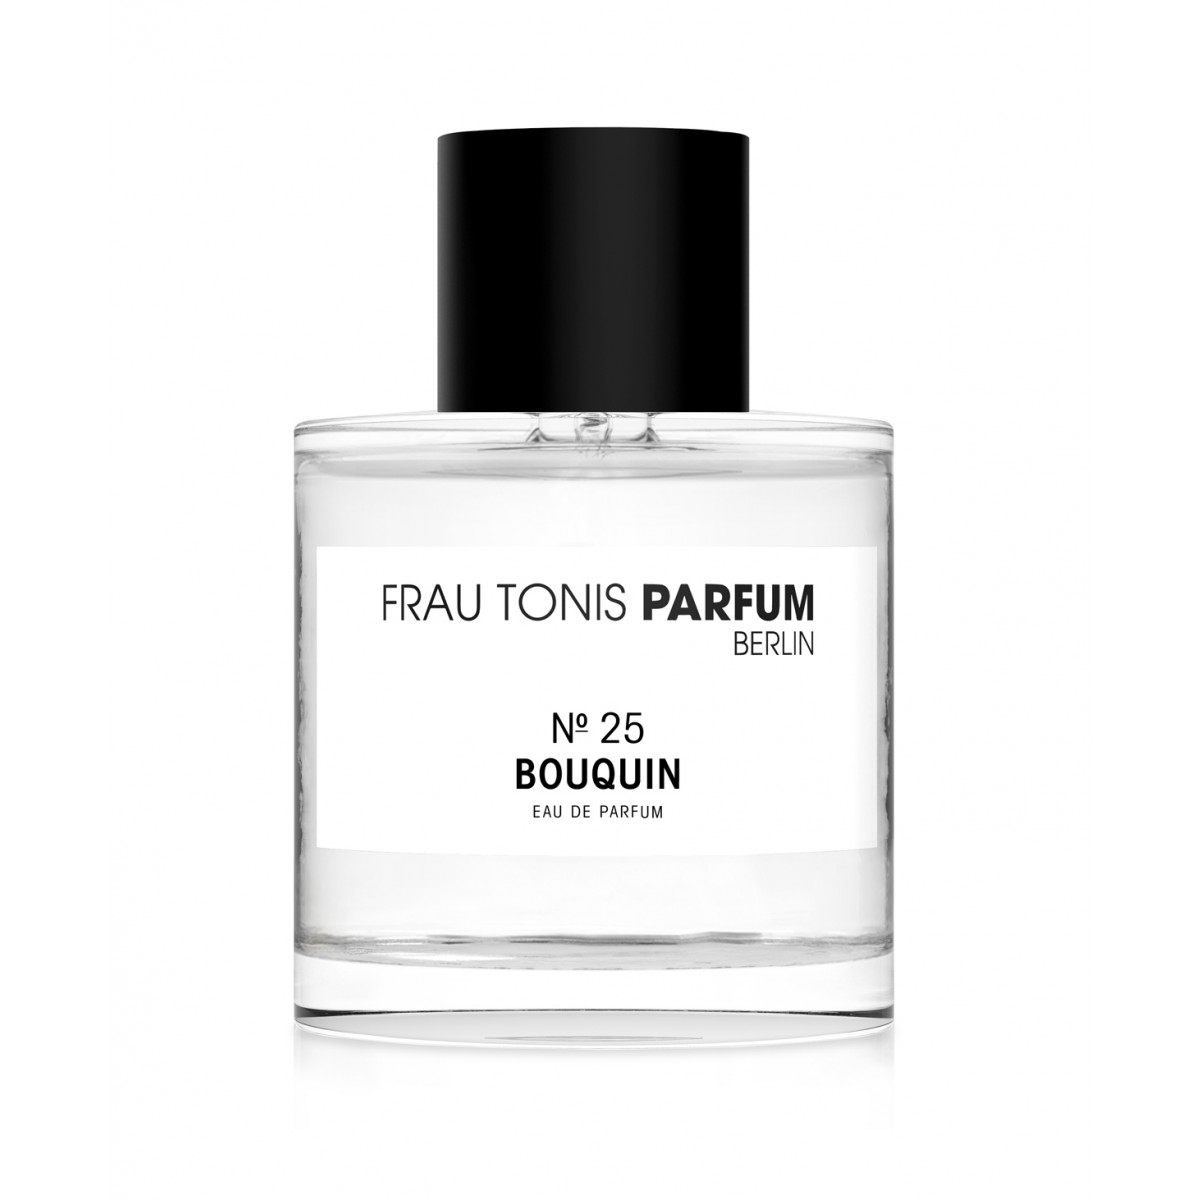 No. 25 Bouquin | Eau de Parfum (100ml) by Frau Tonis Parfum